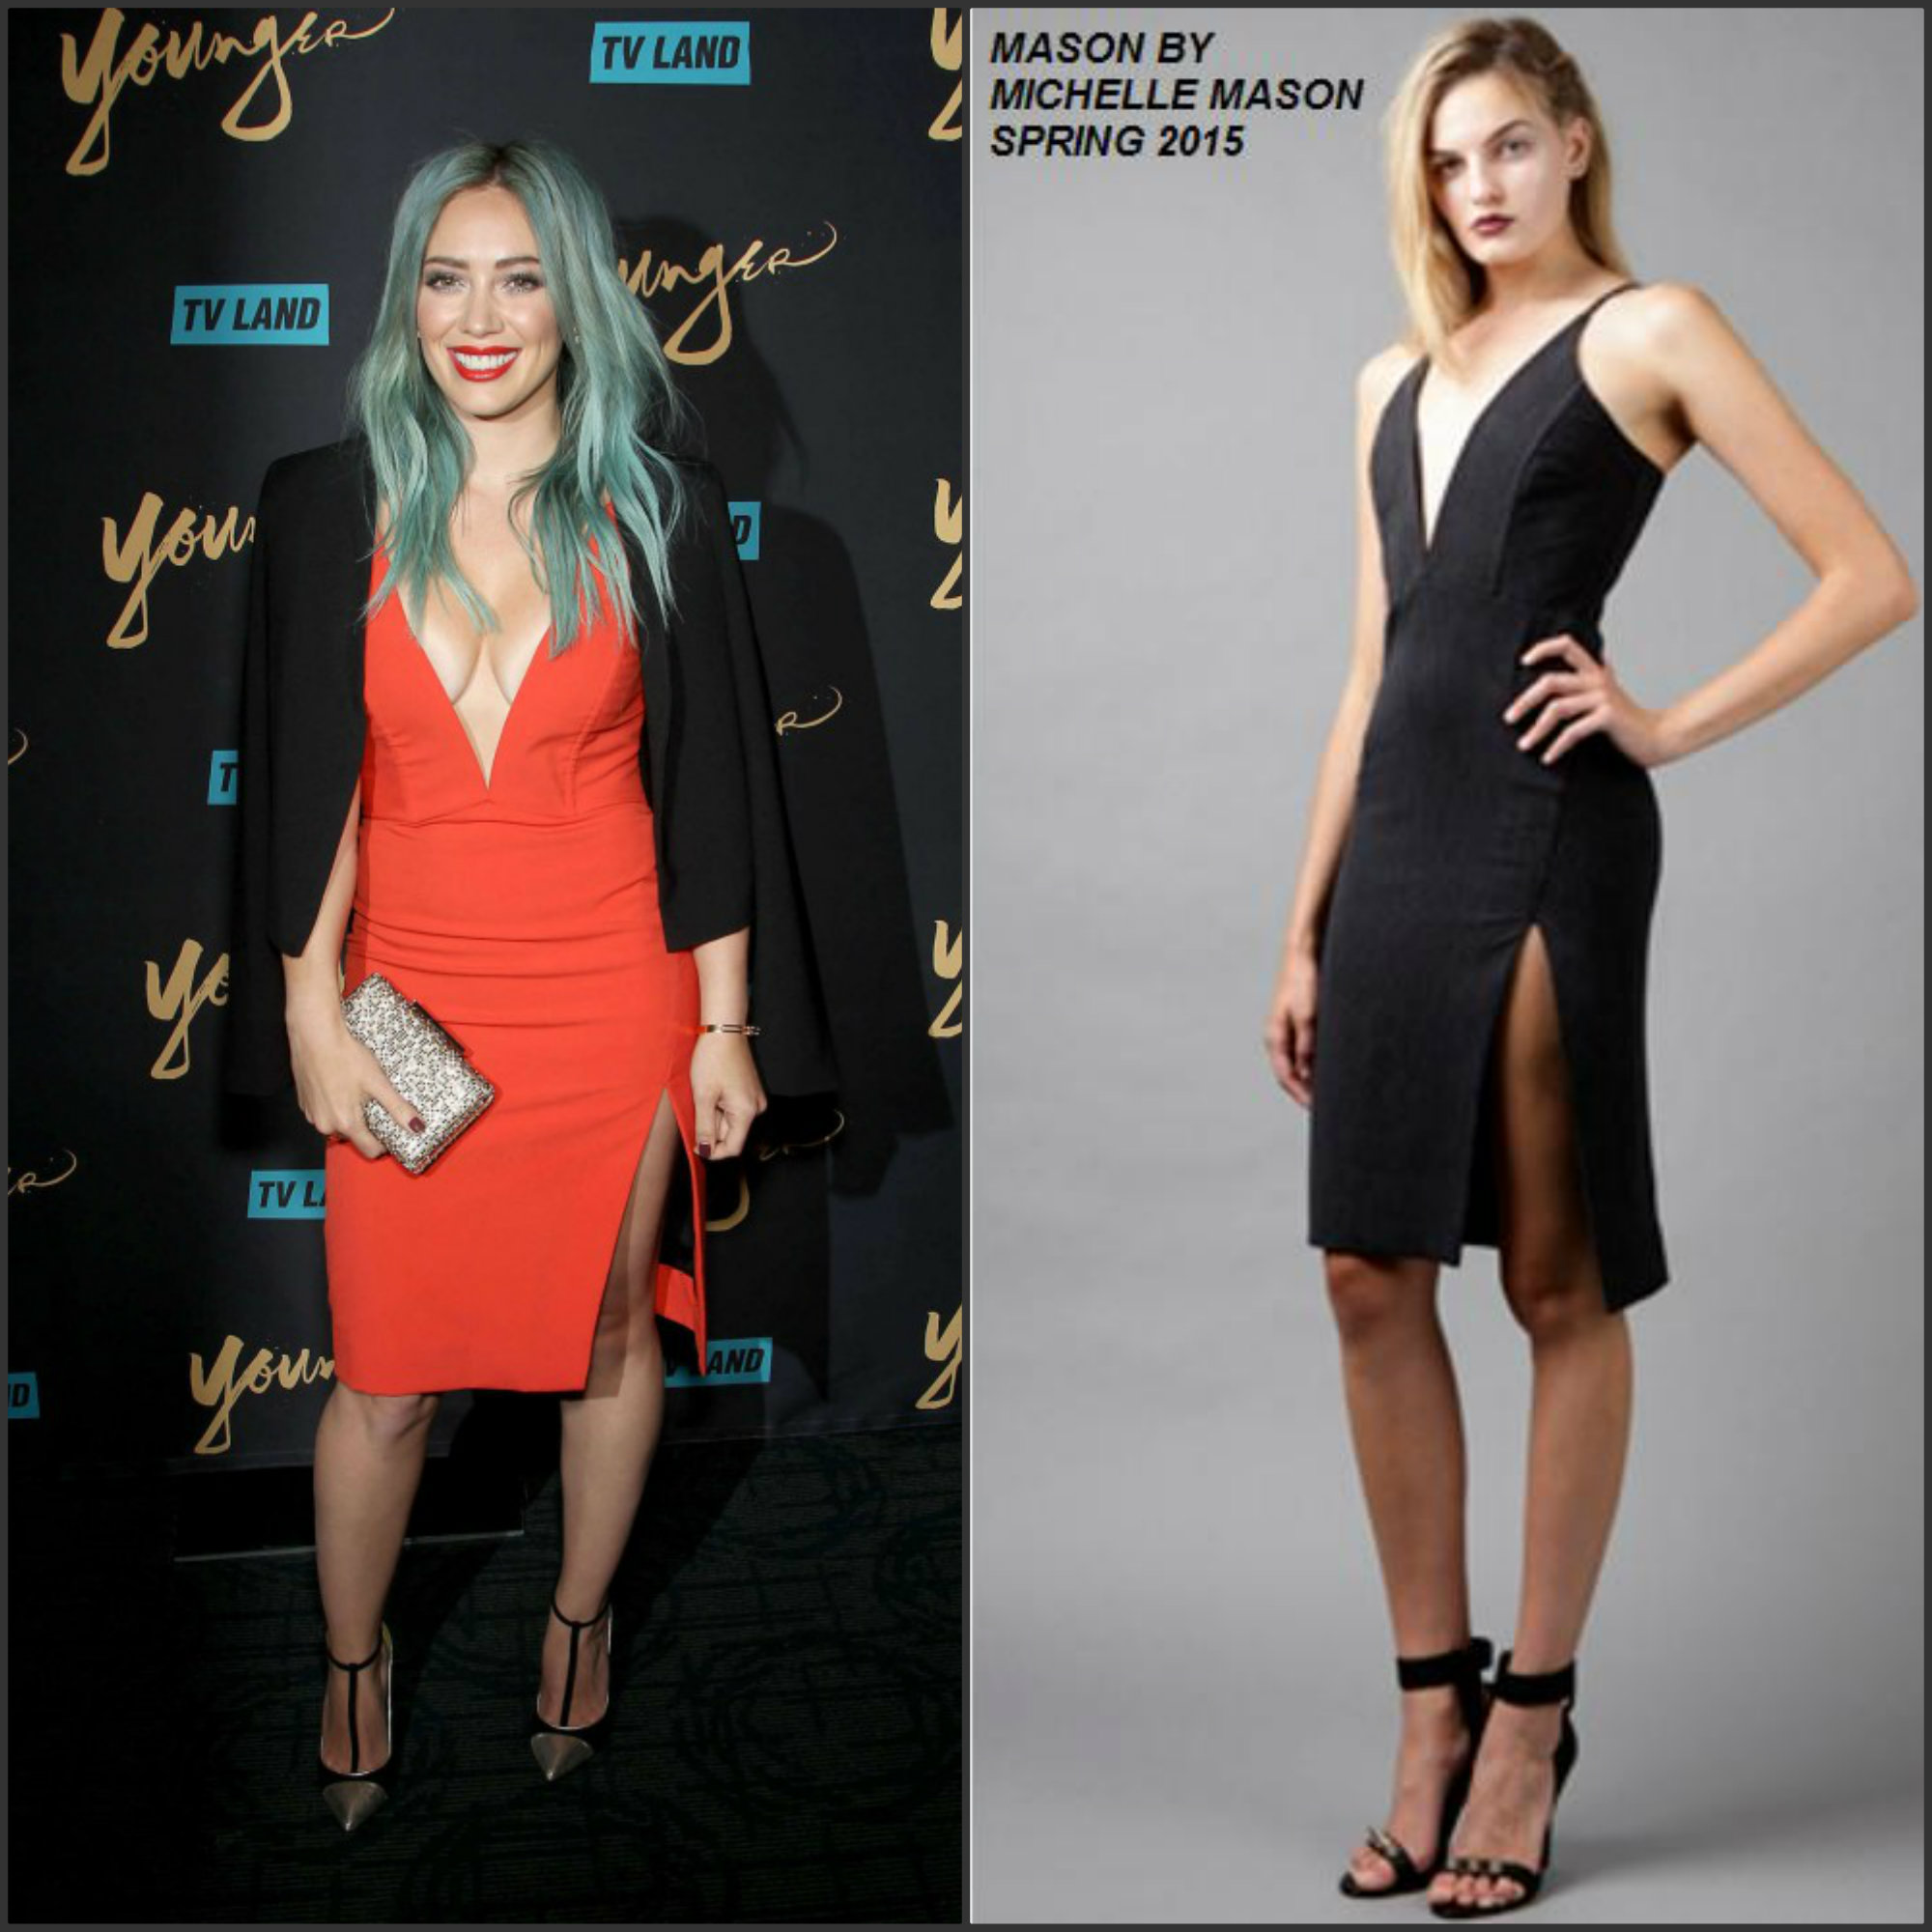 Hilary-Duff-in-Michelle-Mason-at-the-Younger-LA-Premiere